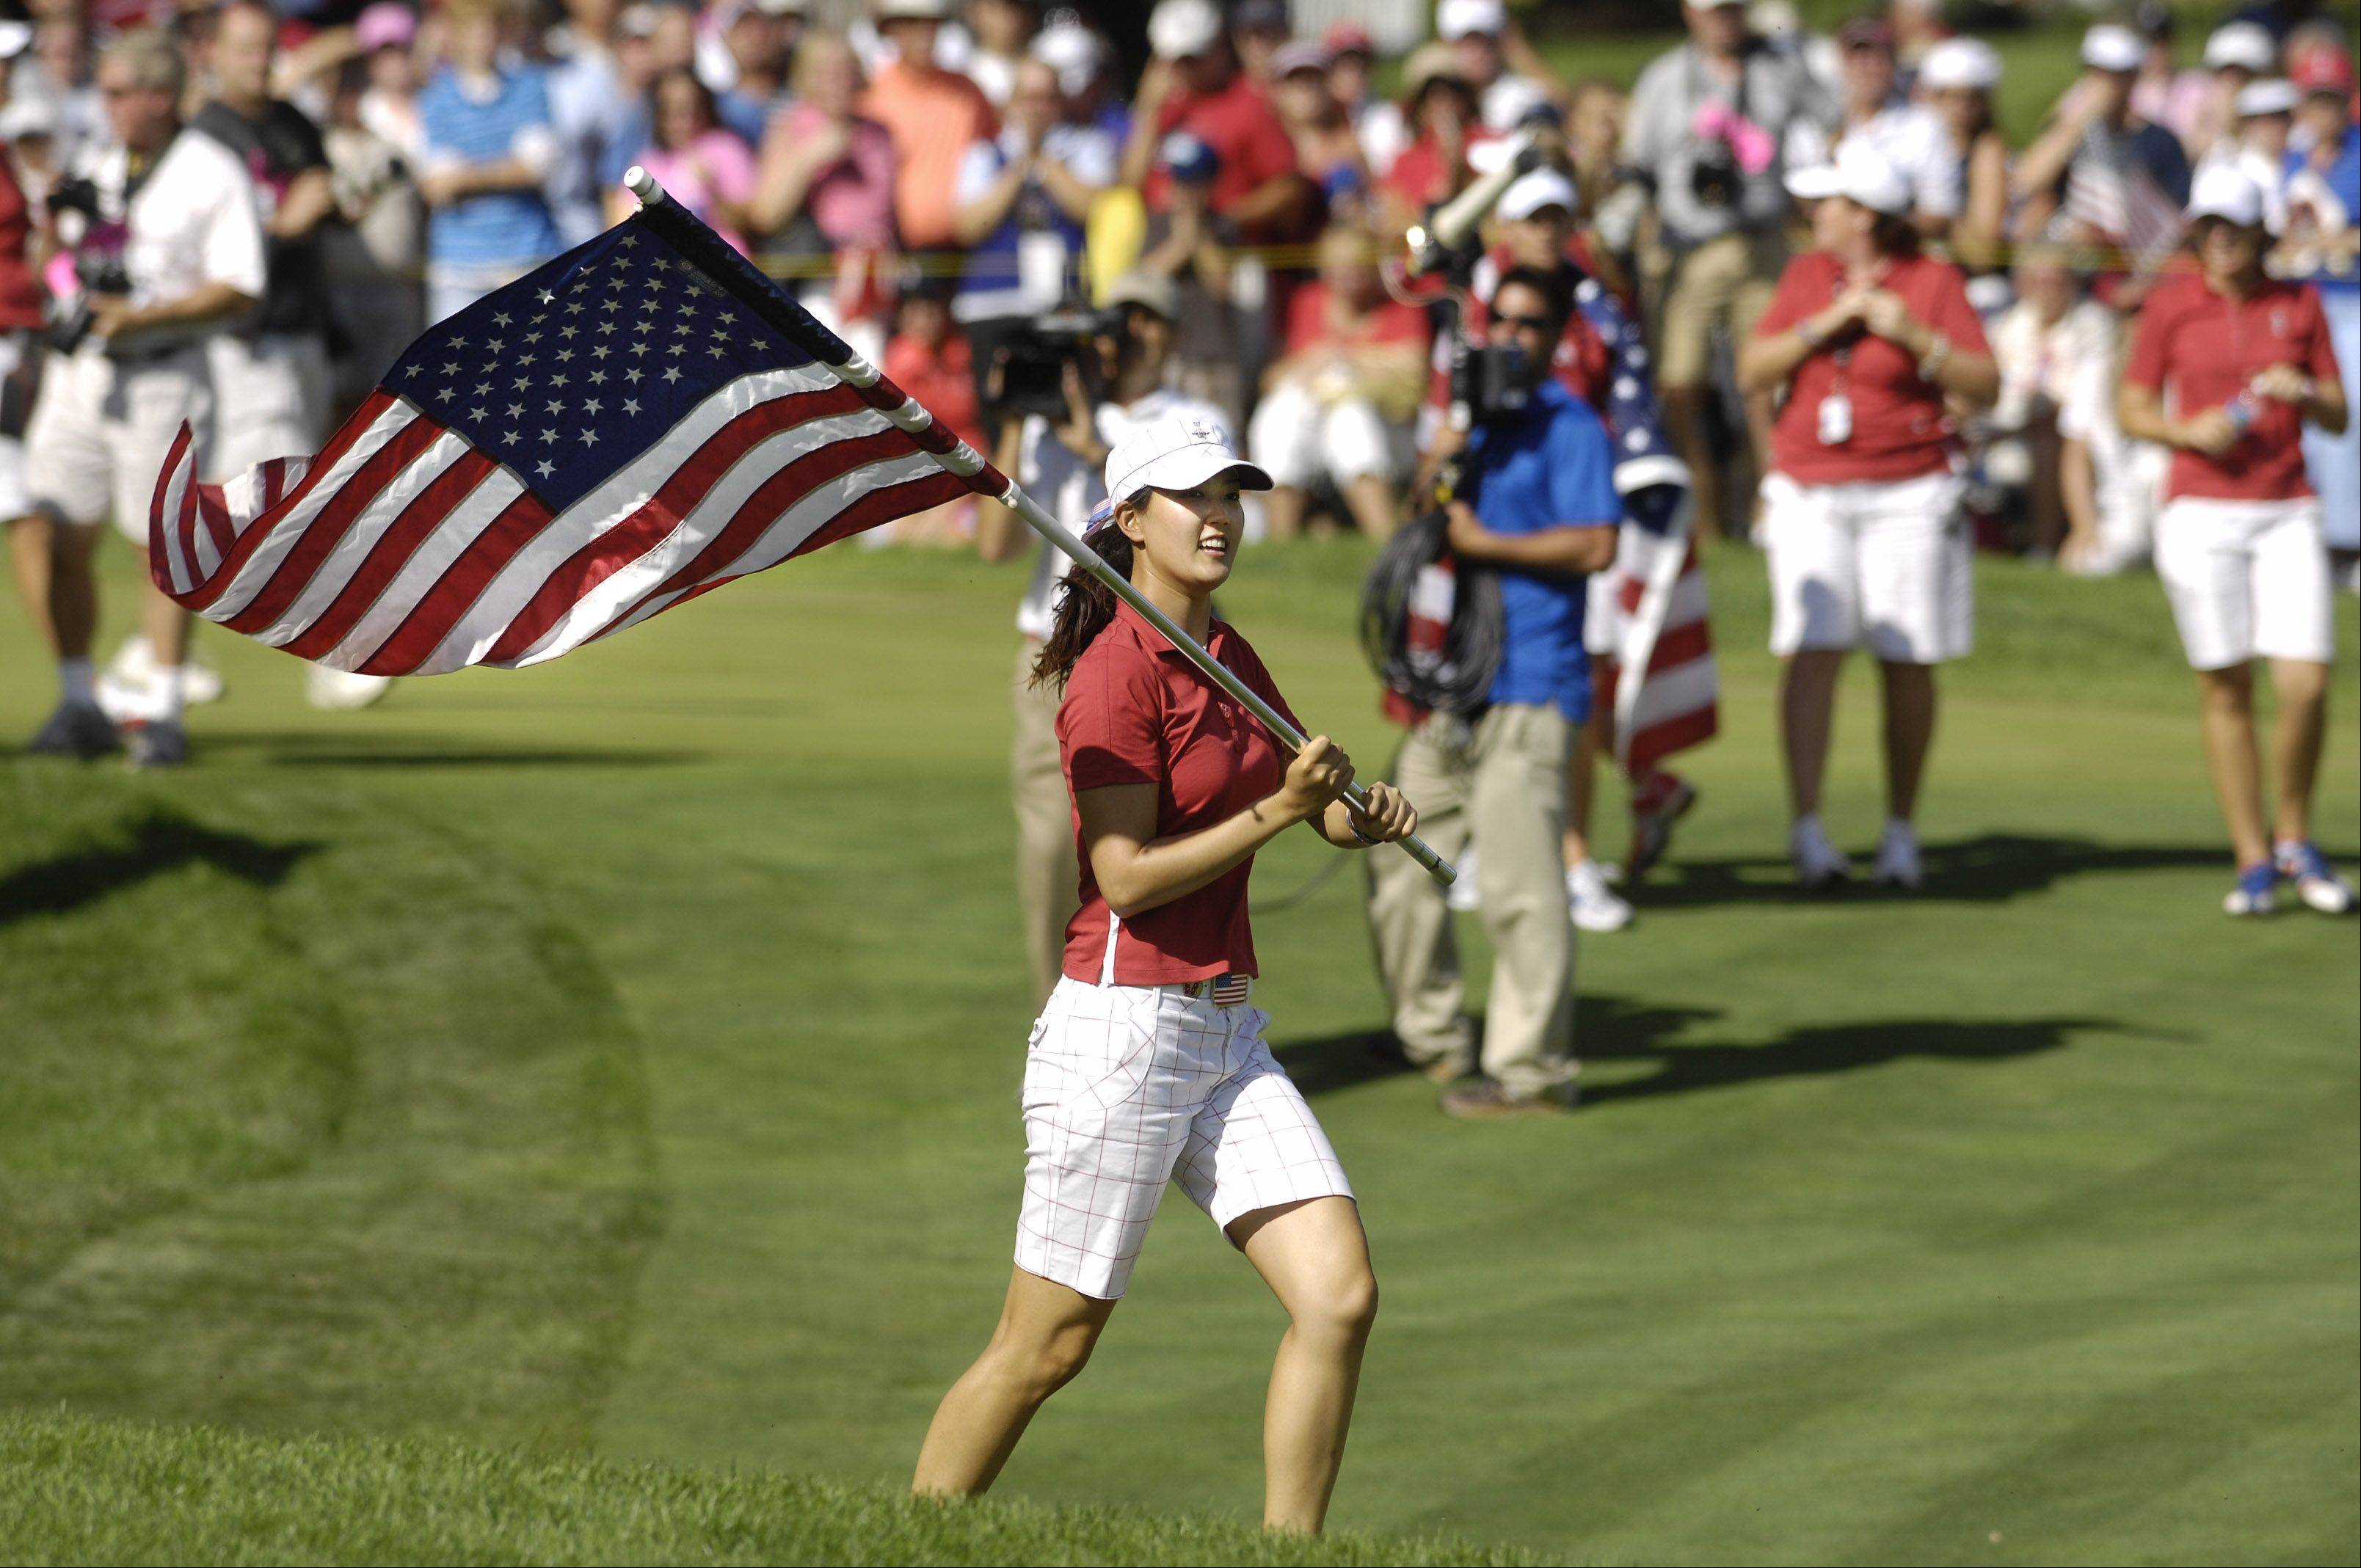 The Solheim Cup in 2009 drew more than 120,000 fans to Rich Harvest Farms in Sugar Grove, and Michelle Wie, here waving an American Flag in celebration, led the charge to defeat Europe.